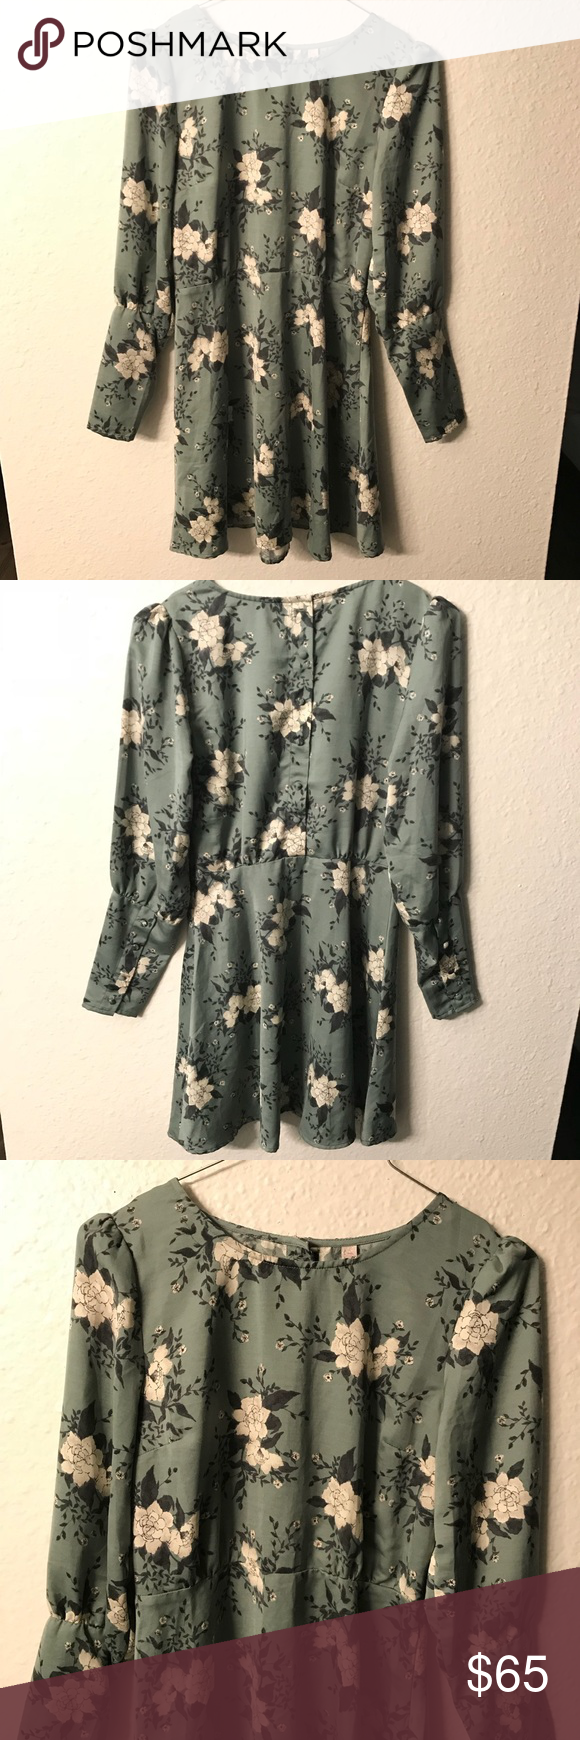 84ced6acffe1 Free People Long Sleeve Green Floral Dress (NWT) Free People Long Sleeve  Floral mini Dress Size 0 Color Green Cream Long sleeve with buttons and  buttons ...